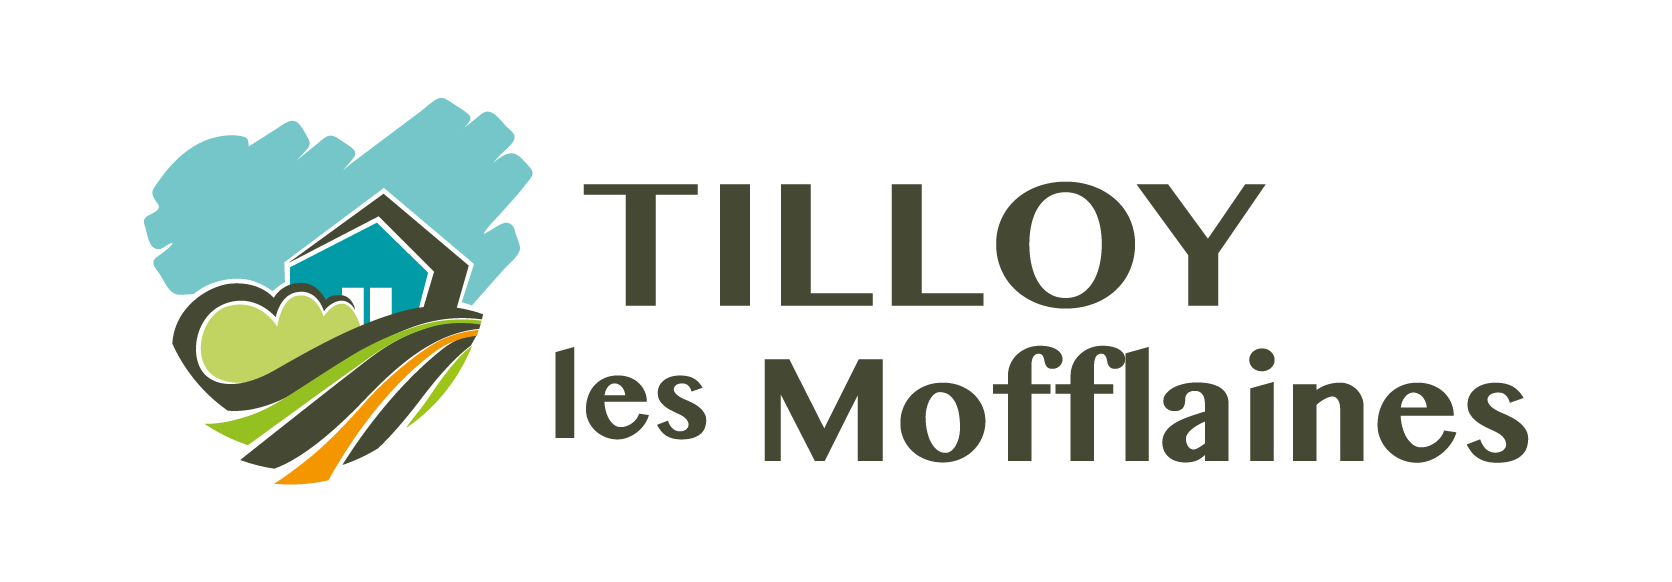 Tilloy Les Mofflaines